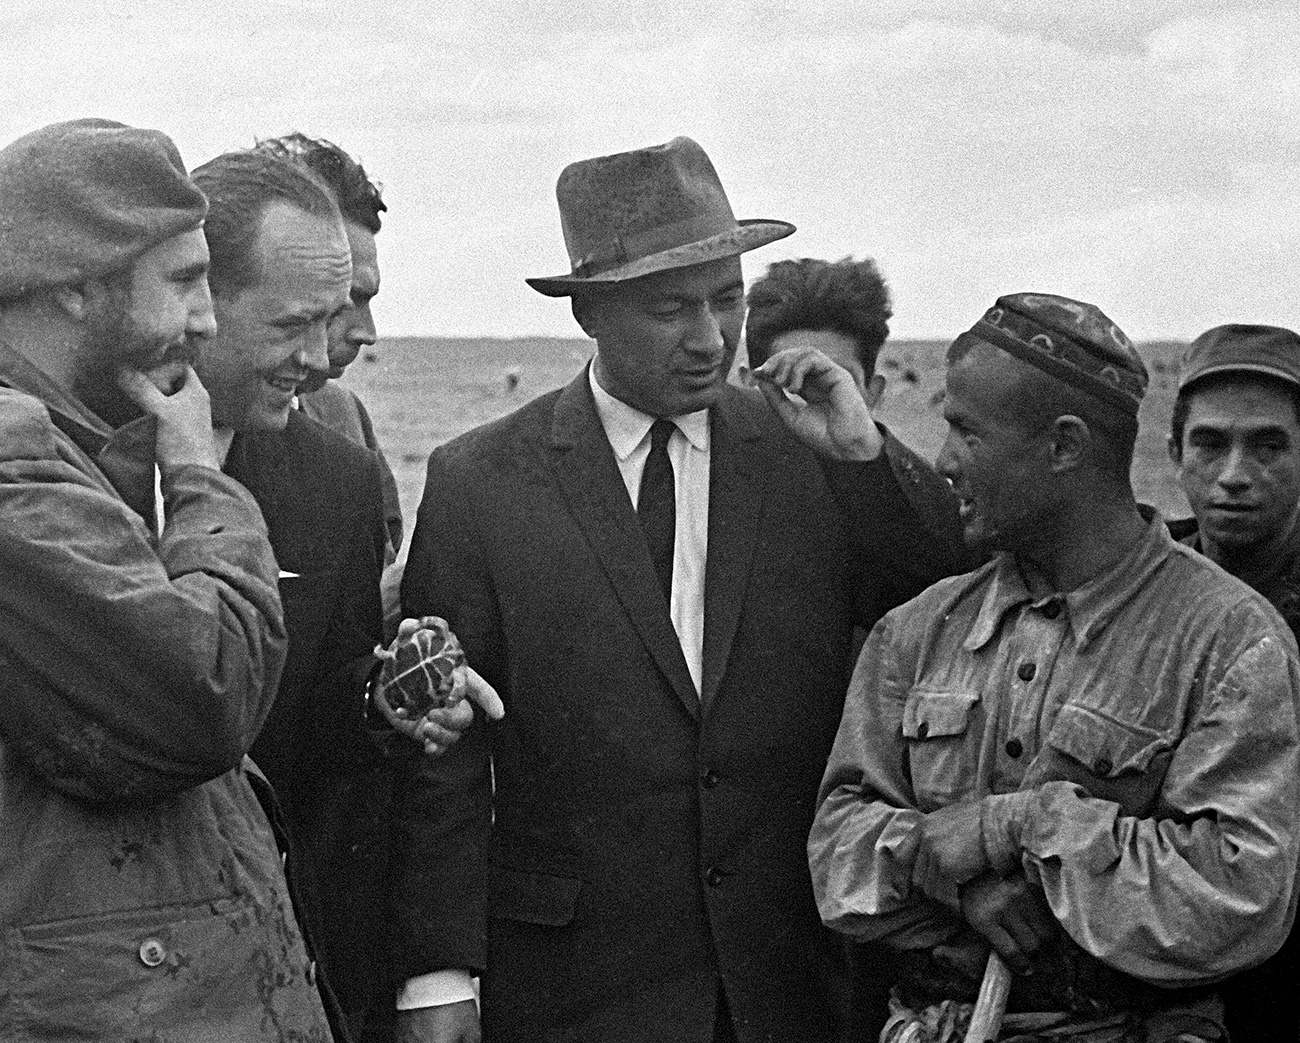 "The entire scheme collapsed after the death of Leonid Brezhnev in 1982. Yuri Andropov then rose to power, who for many years had collected ""kompromat"" (compromising evidence) implicating the Uzbek authorities. // Fidel Castro (L) and First Secretary of Uzbekistan's Communist Party Sharof Rashidov (2nd R) and a shepherd at the Sverdlov collective-farm, 1963"